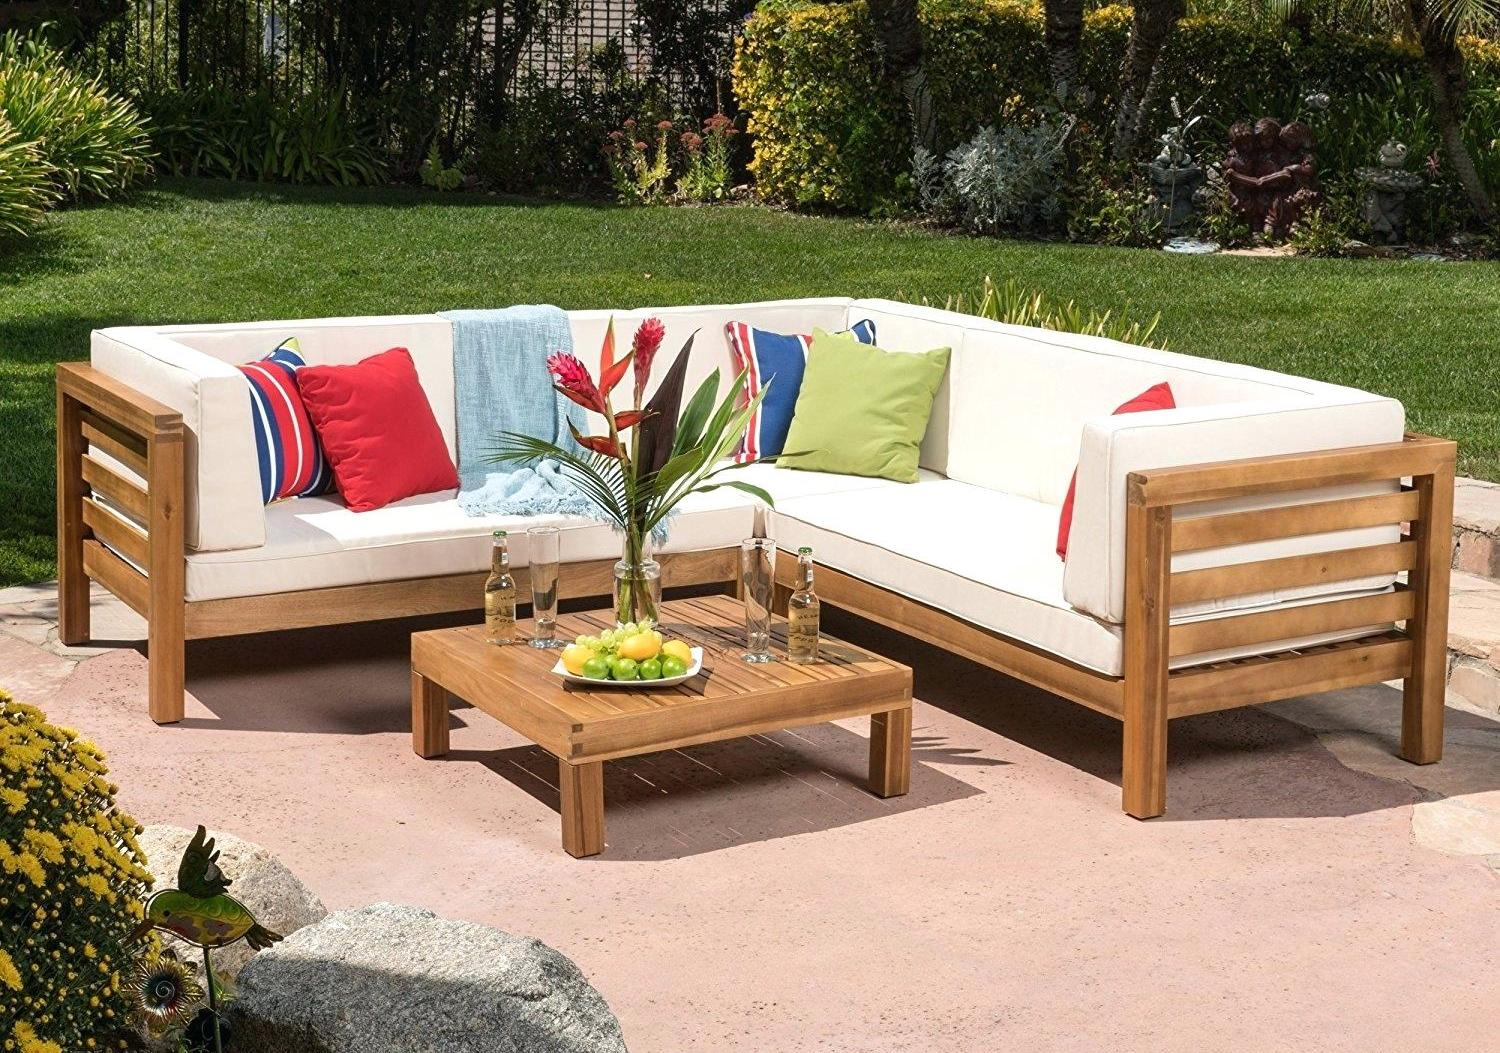 Outdoor Seating Sale Save Over 50 On 4 Piece Sets The